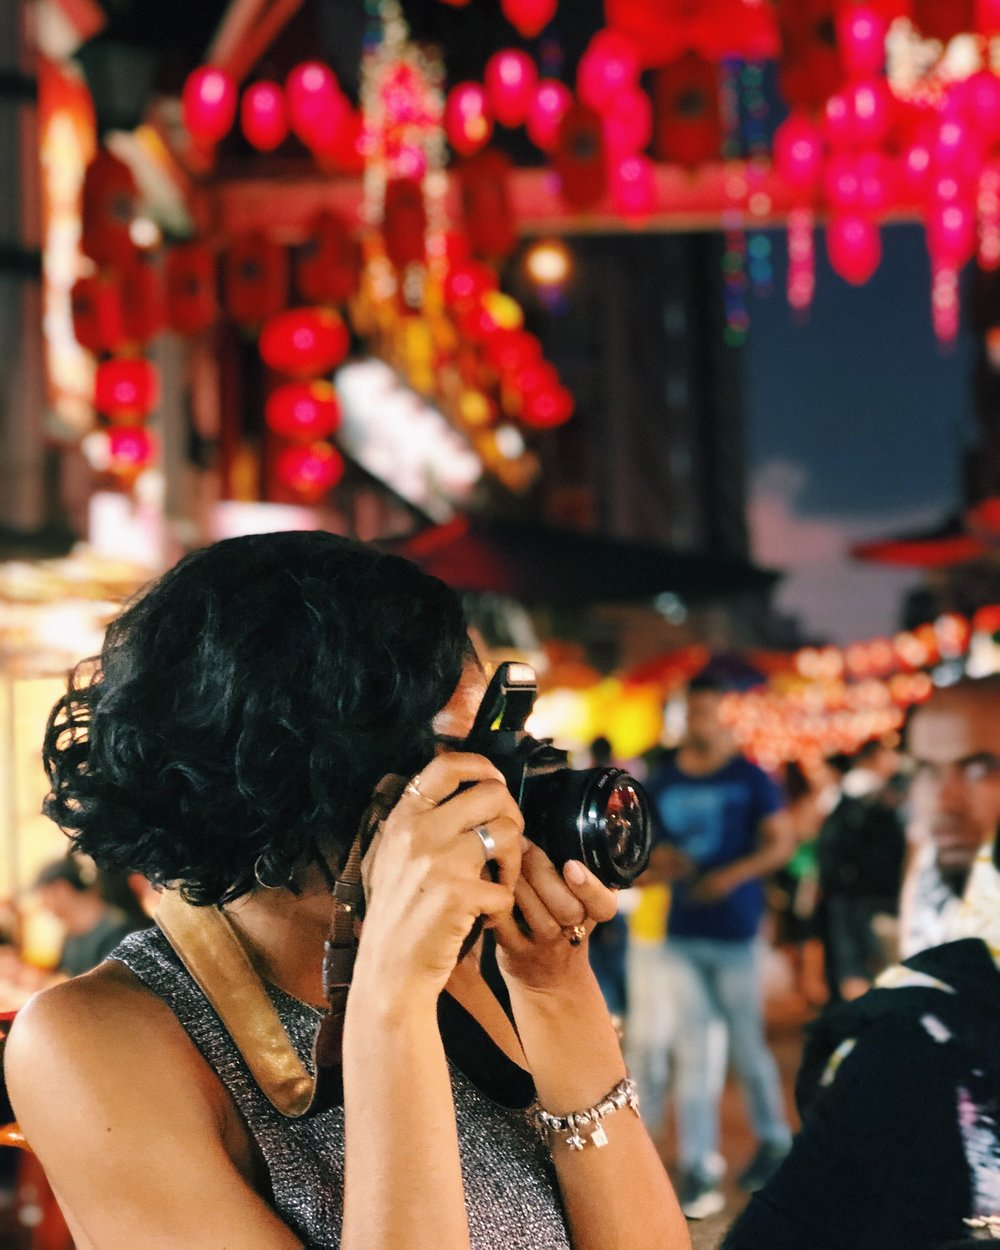 Kuala Lumpur, Malaysia // 02.2018 - got together with my creative, photography-loving colleagues and went out shooting in Chinatown just before Chinese New Year. we had so much fun capturing our different perspectives of the busy shops & alleyways. here's the behind the scenes, from my lens. (except the shot of me here, which was captured by aundrèa's iphone!; as well as the 'movie,' shot & edited by tony)photo album ➝